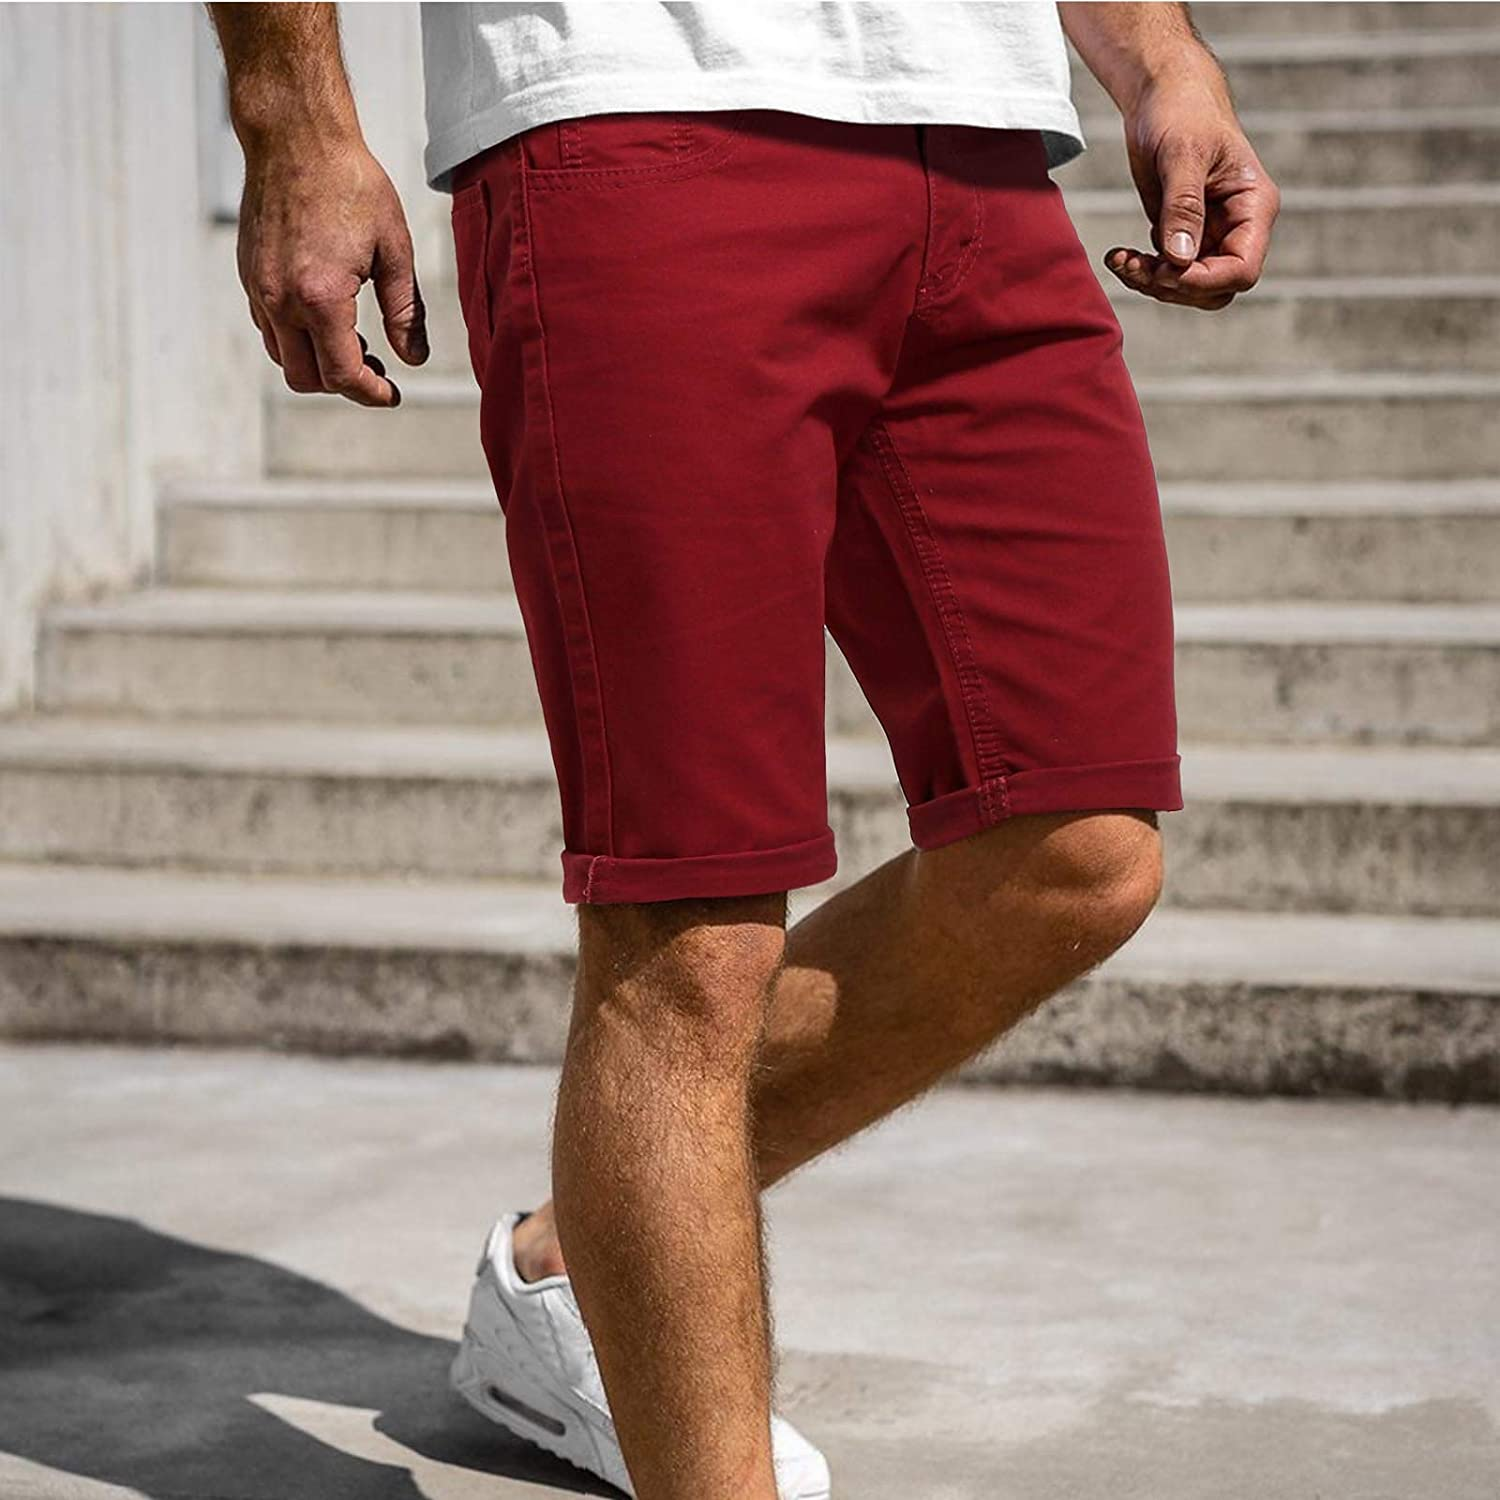 Men's Jersey Shorts Simple Color Workout Casual Polyester Fitness Bodybuilding Gym Short Sports Shorts Training Short